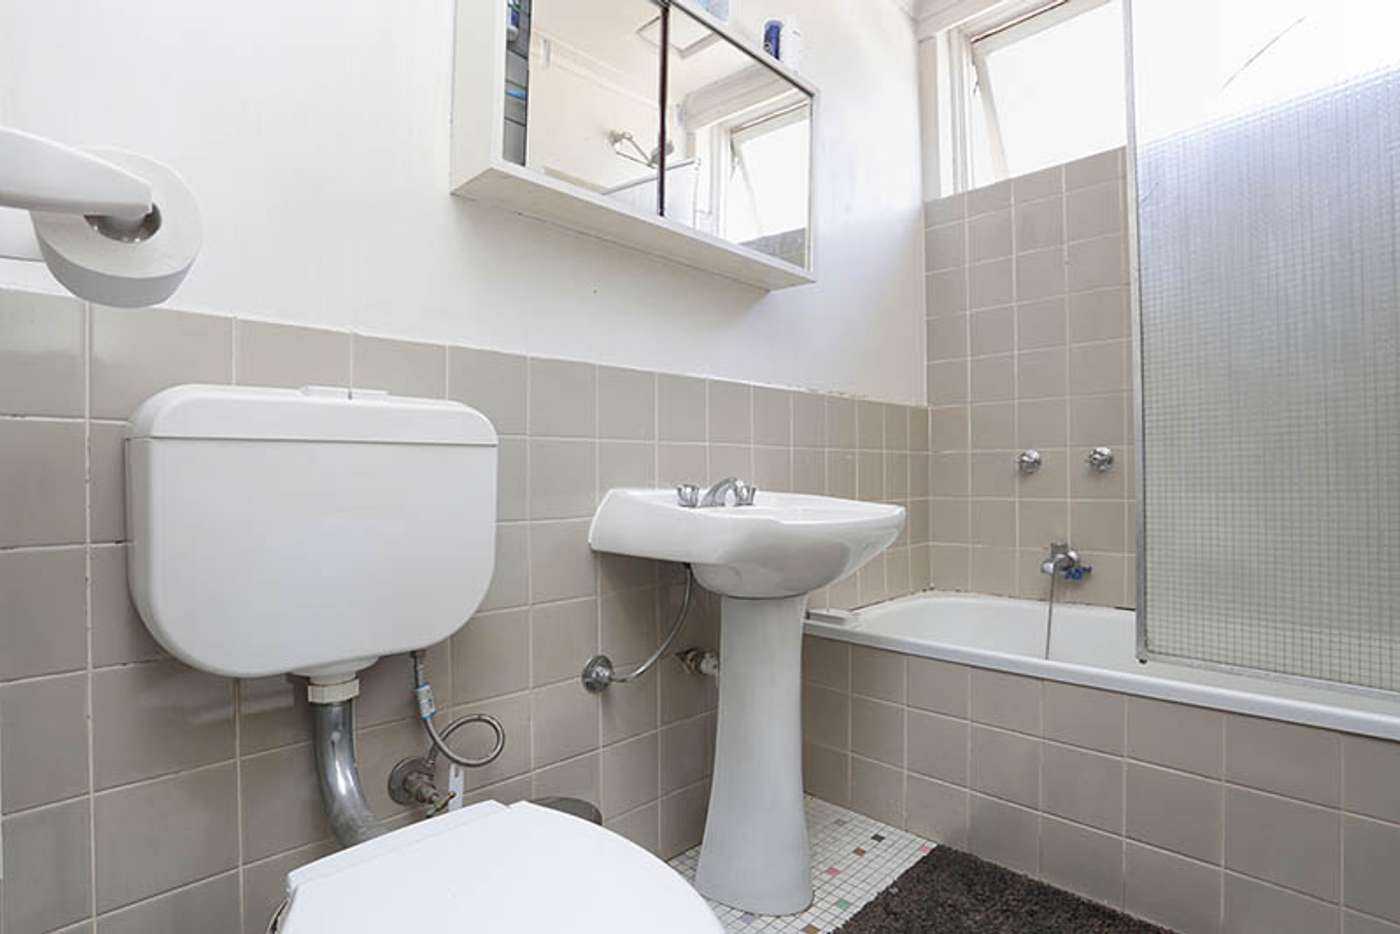 Fifth view of Homely unit listing, 11/325 Orrong Rd, St Kilda East VIC 3183